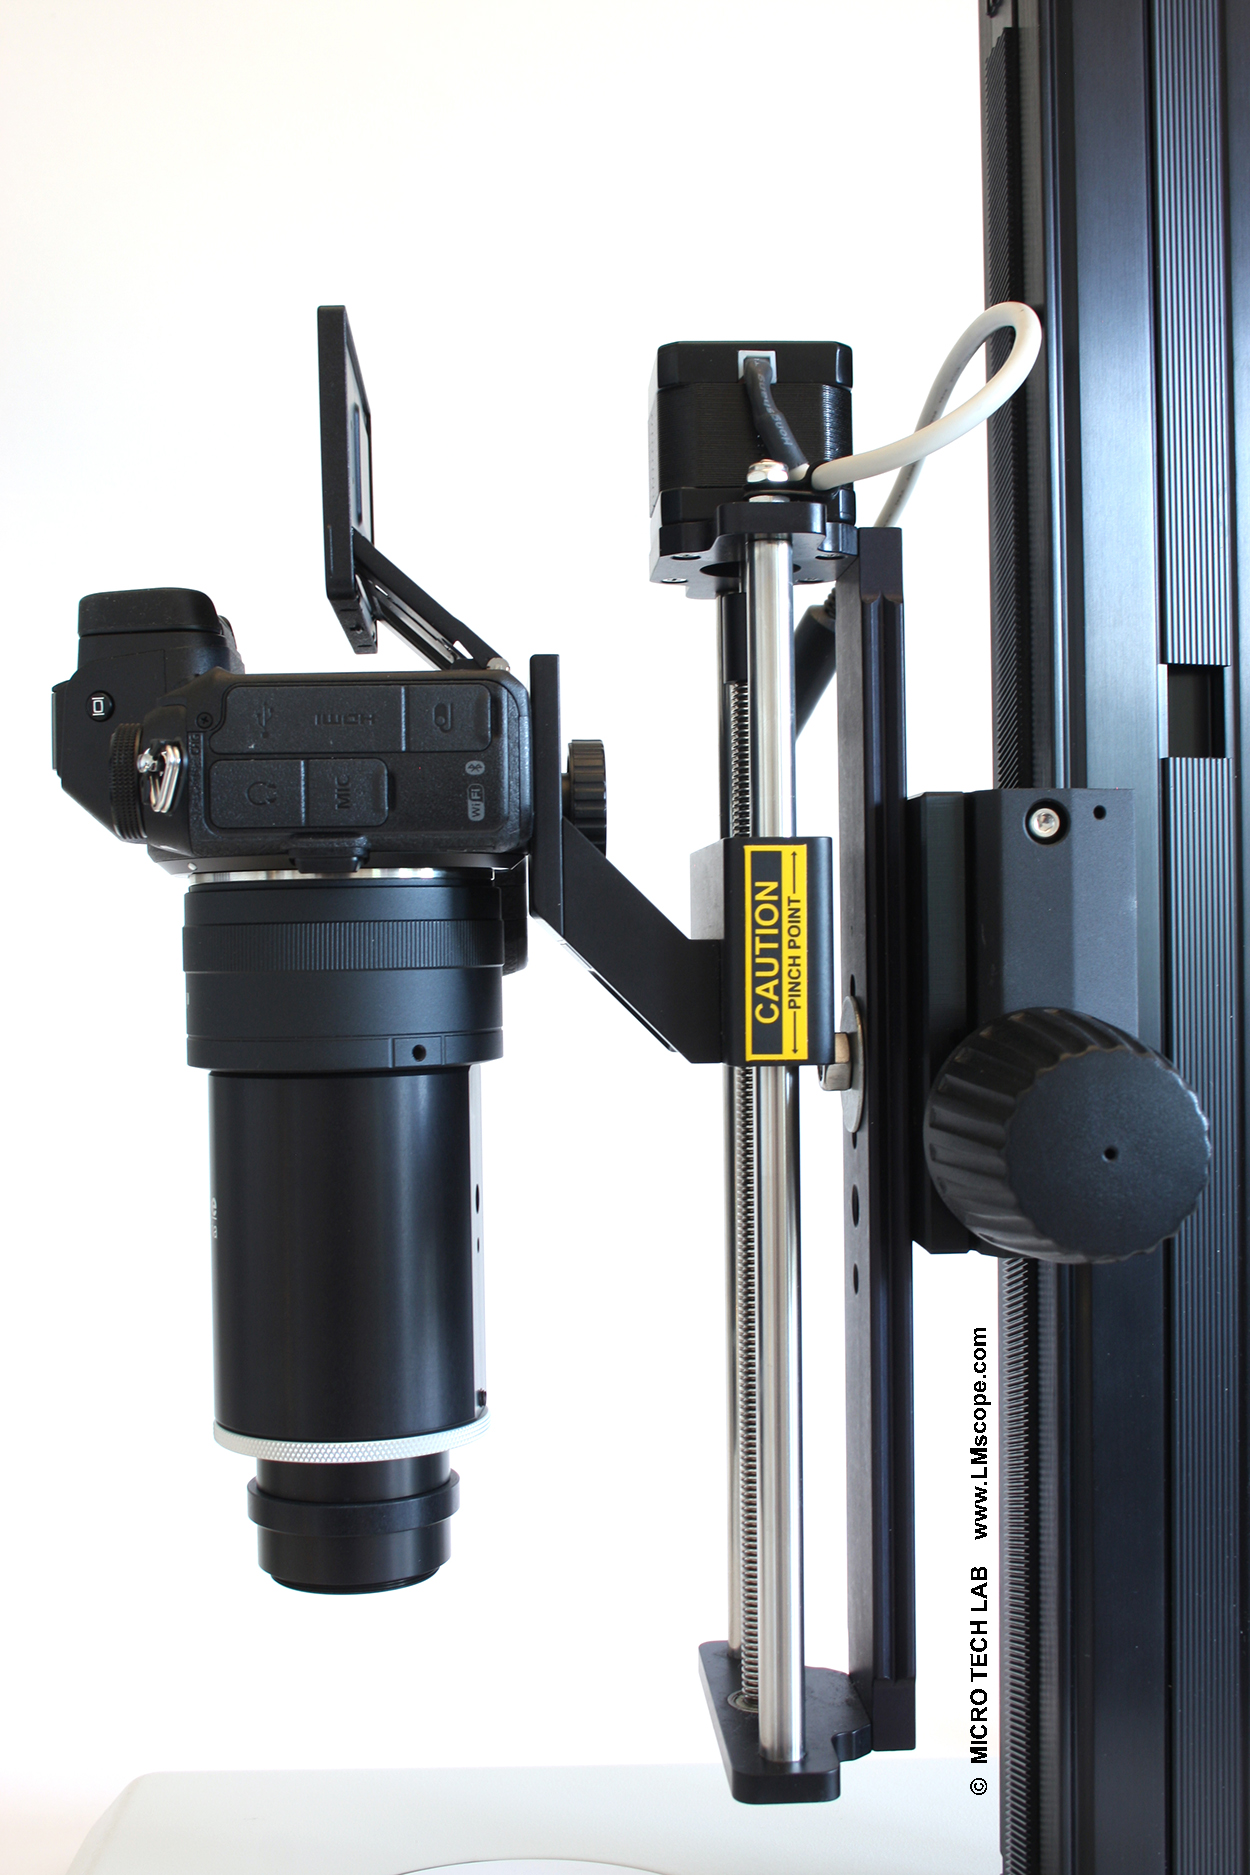 LM macroscope with Stackshot rail option mounting plate focus stacking